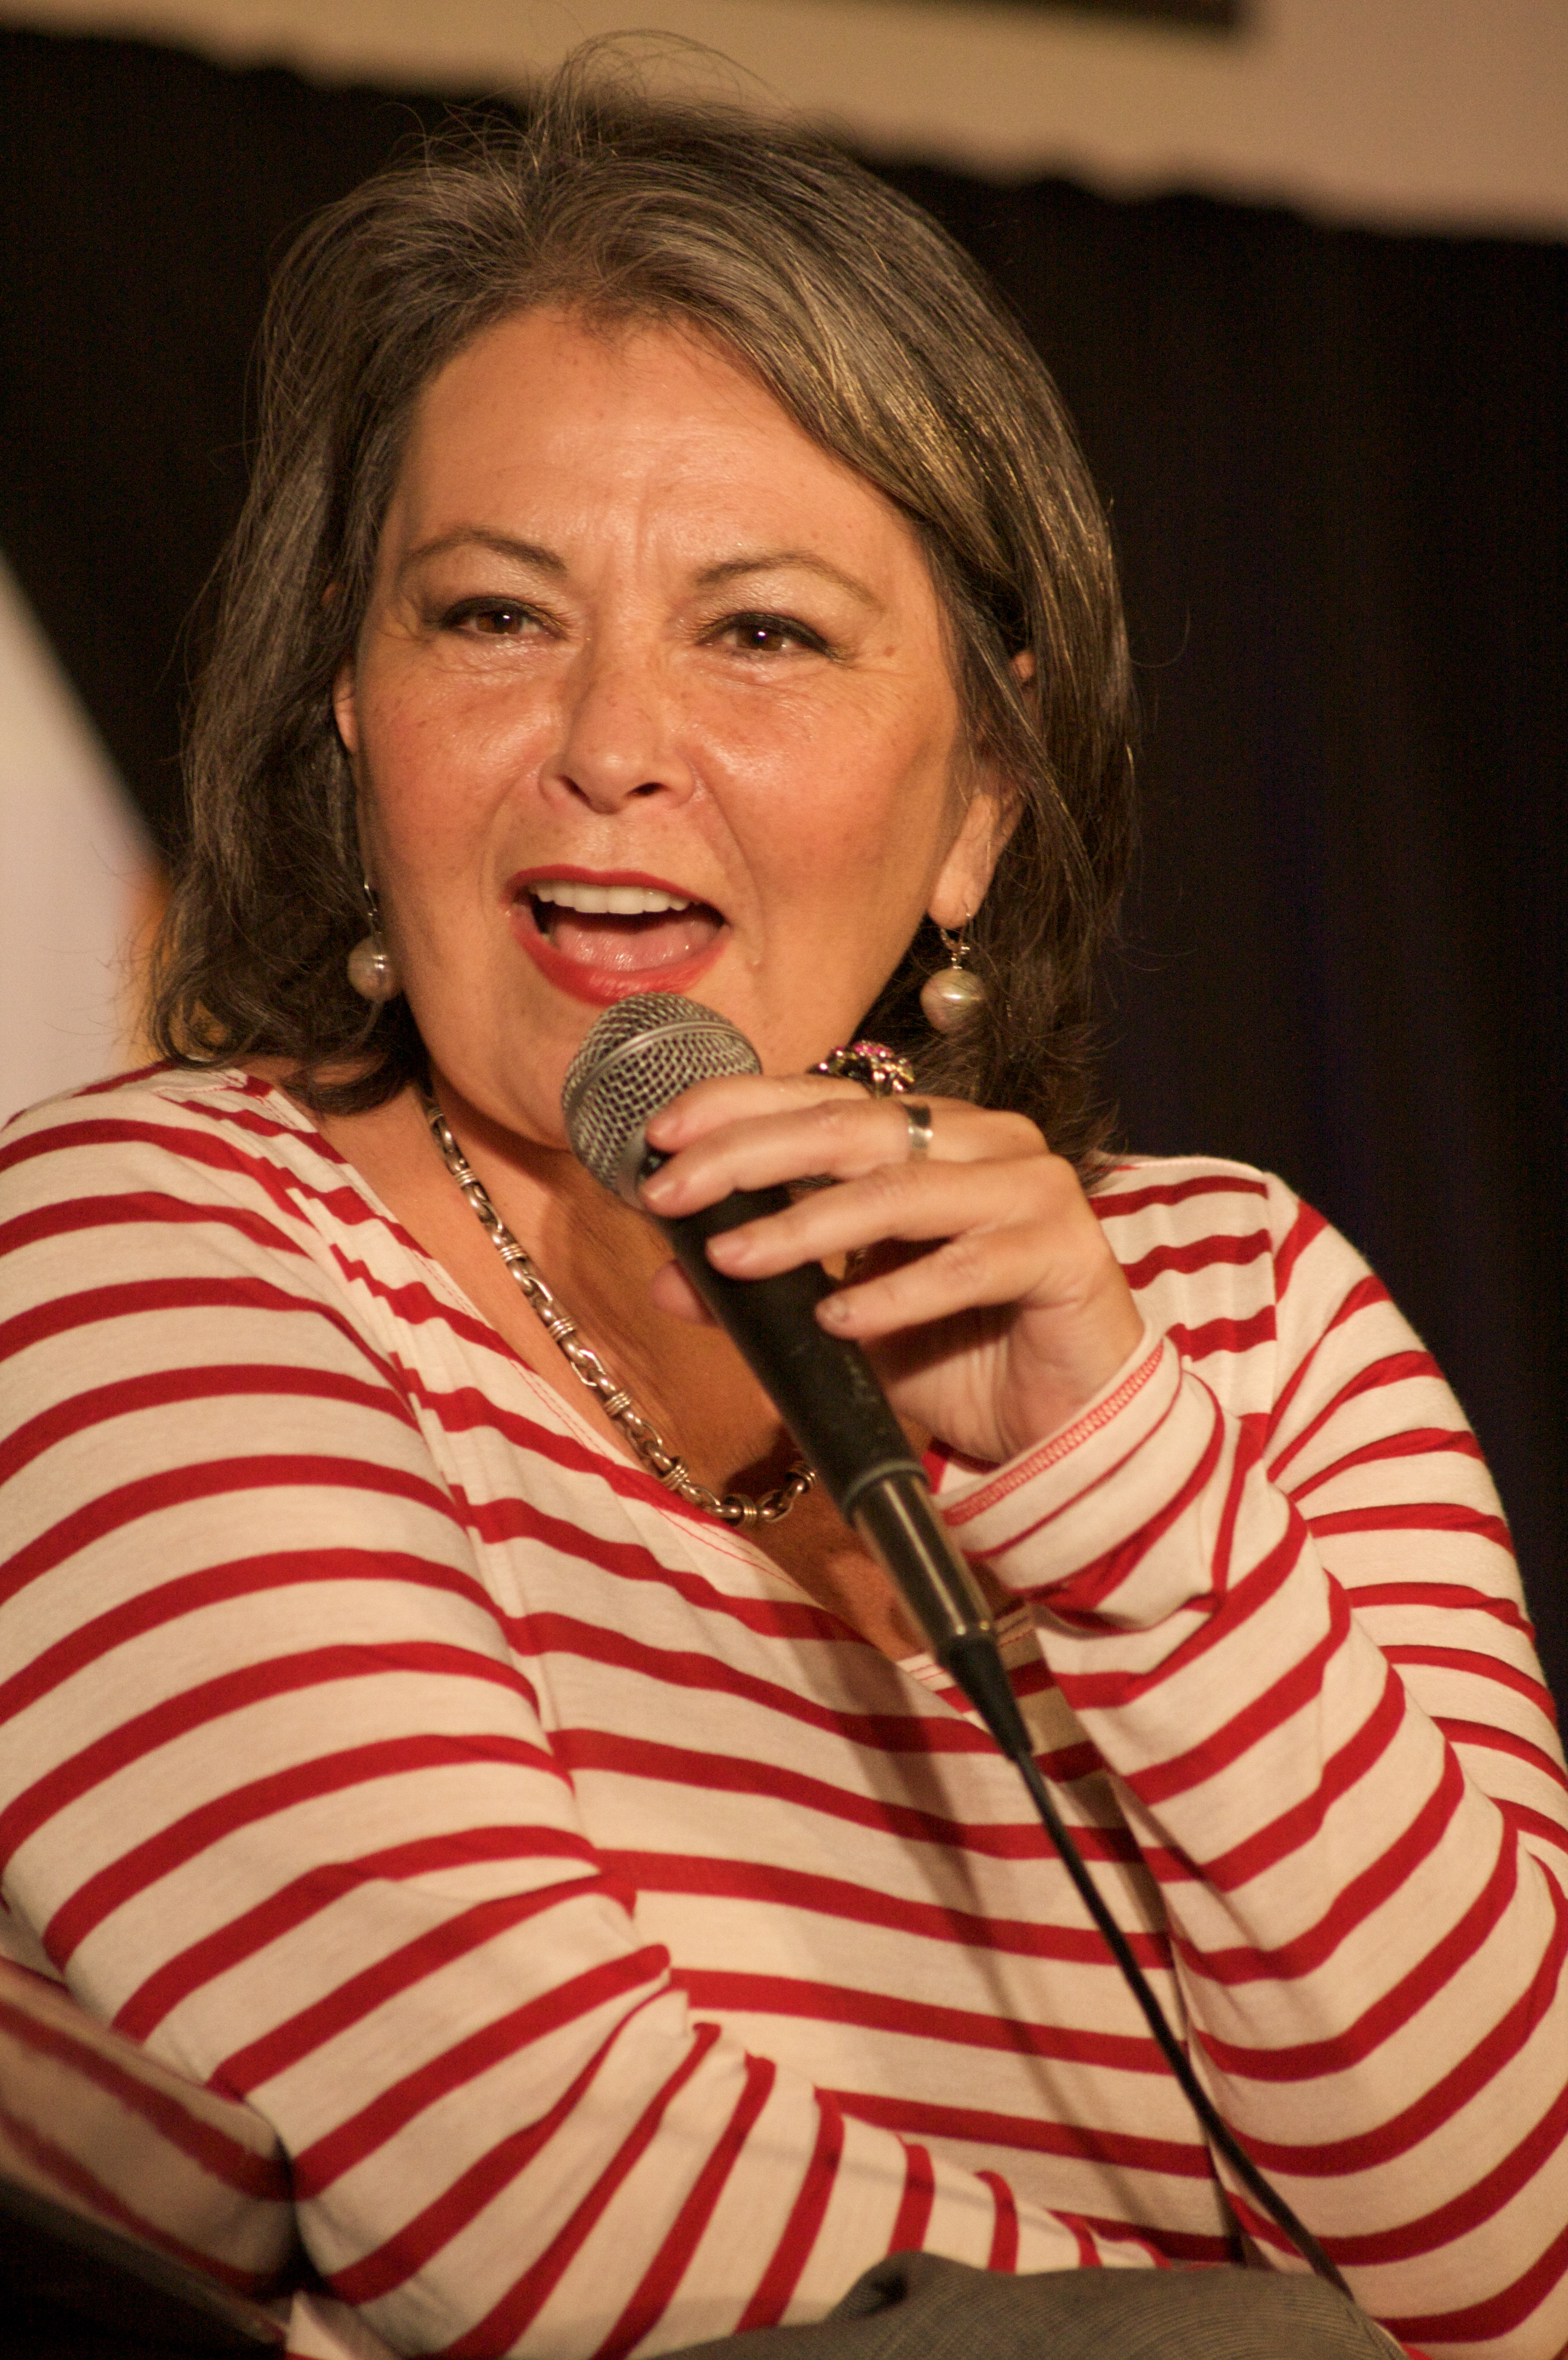 Roseanne Barr's Hitler photos from 2009 resurface; 'Roseanne' producer urges viewers to ignore 'background noise'